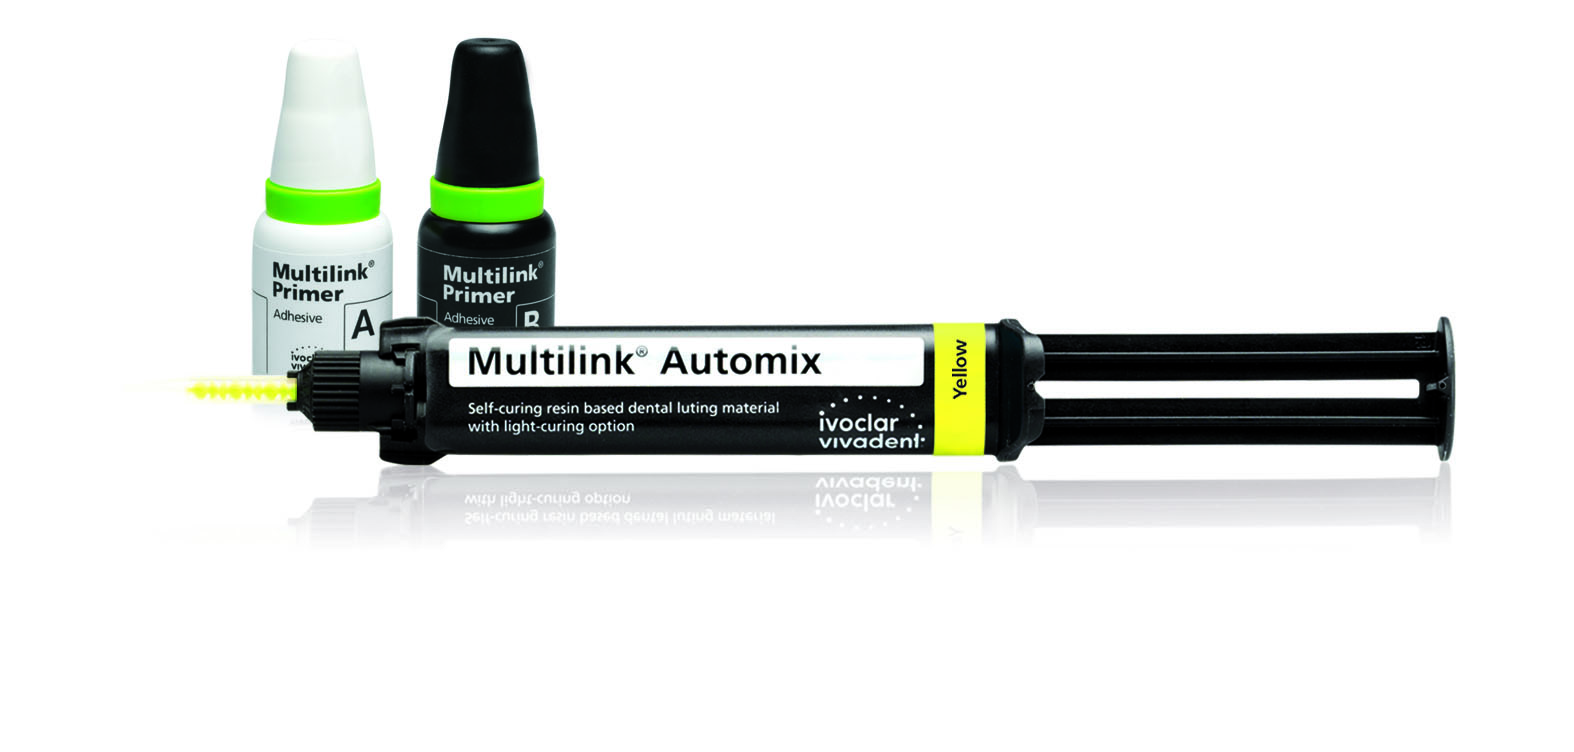 Multilink Automix Next Generation